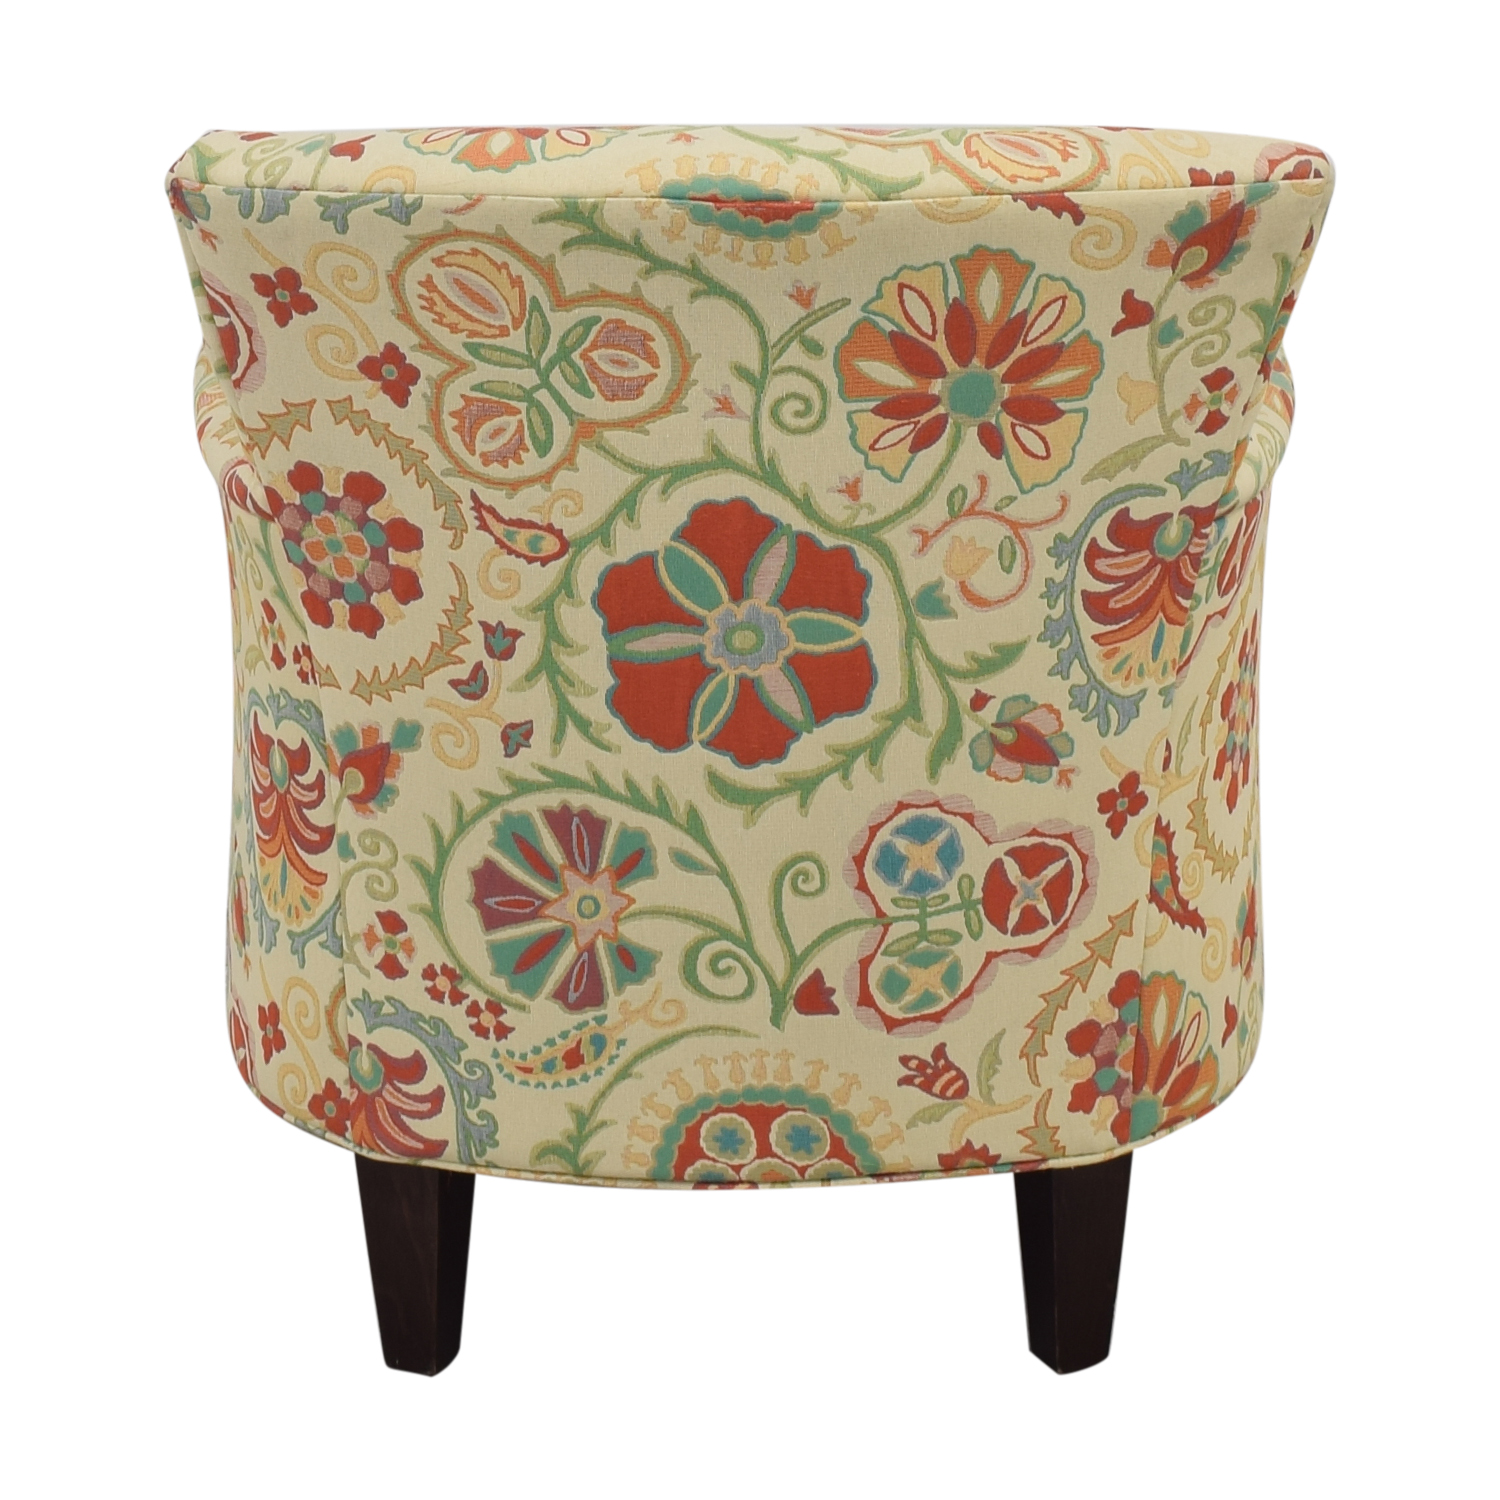 Crate & Barrel Upholstered Printed Armchair sale